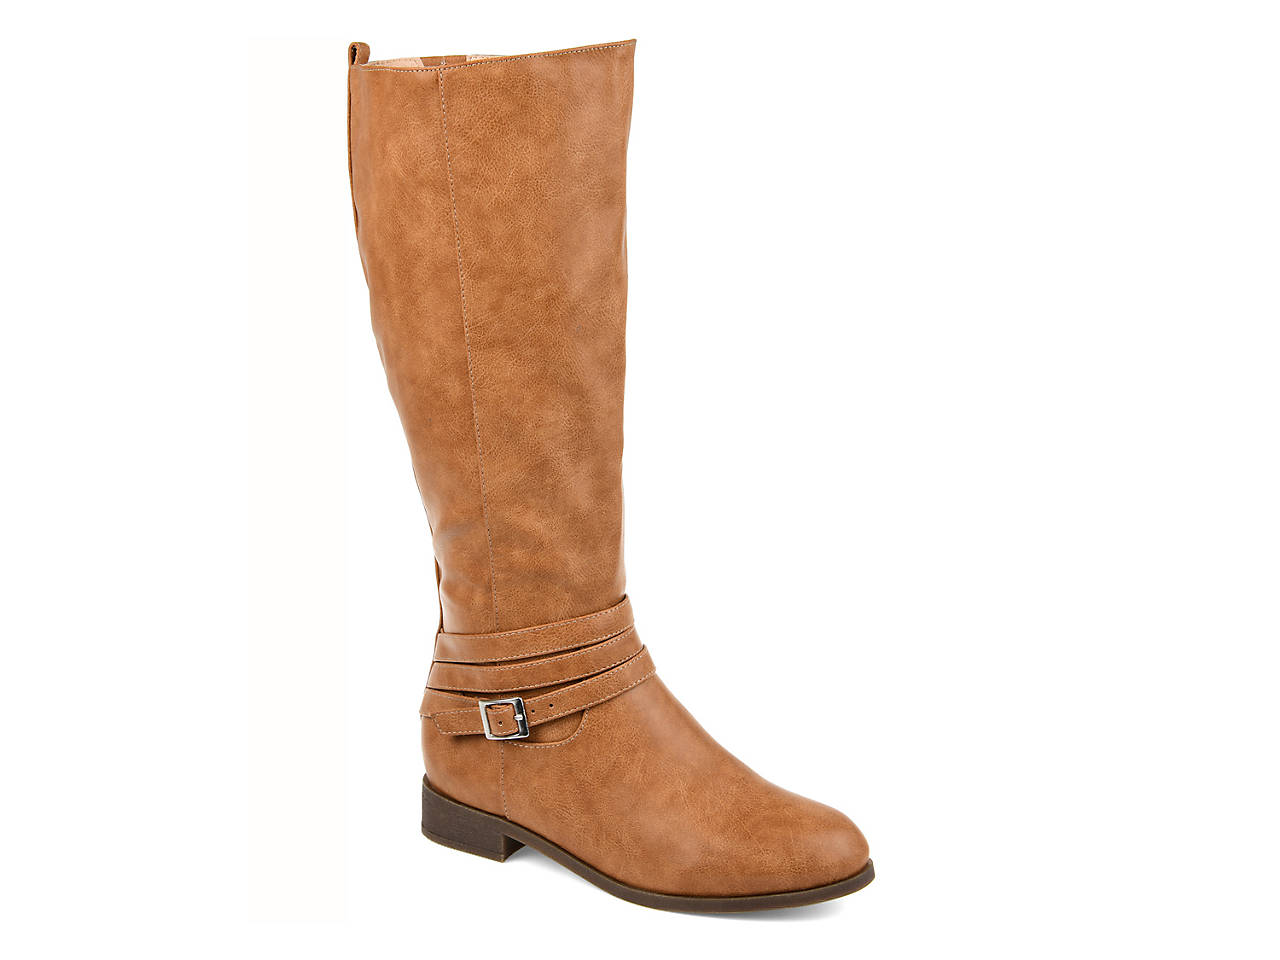 0d37566bf83 Journee Collection Ivie Extra Wide Calf Riding Boot Women s Shoes